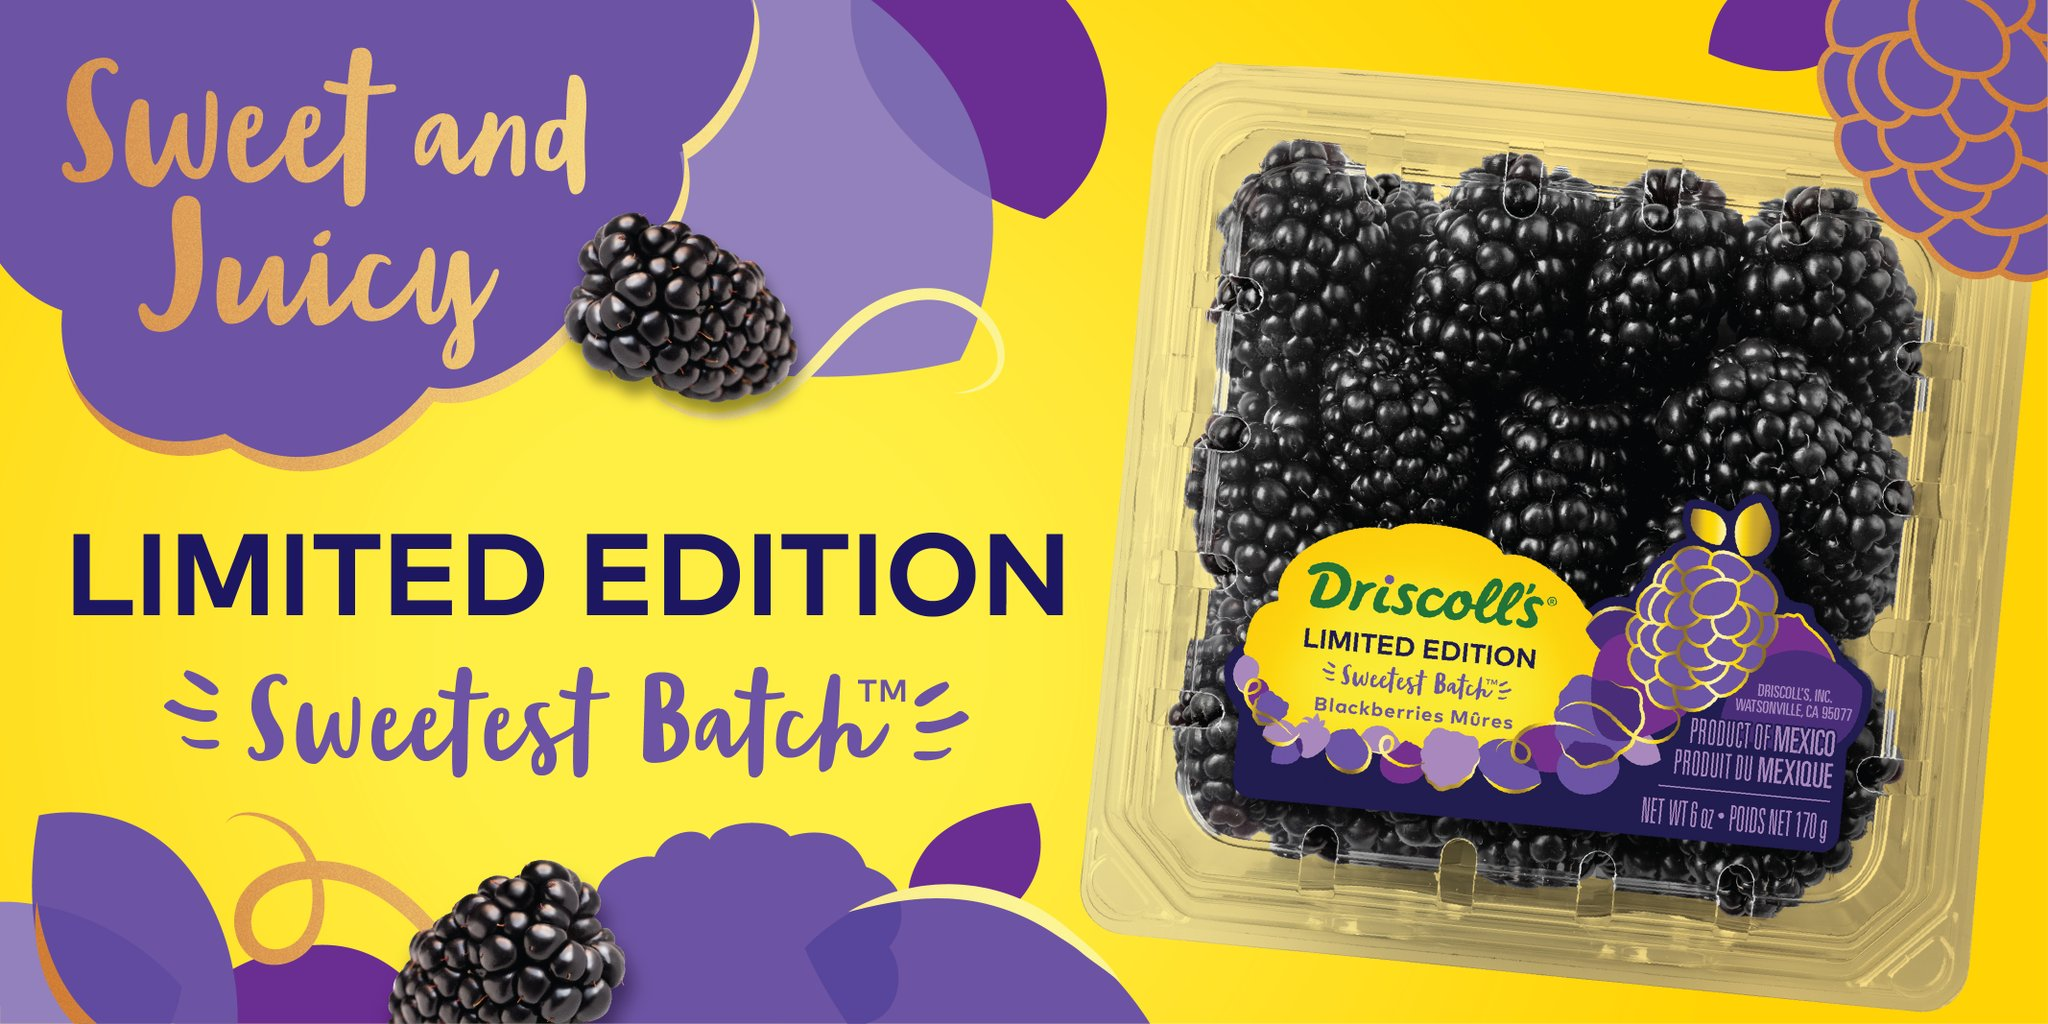 "Driscoll's Berries on Twitter: ""What makes our Limited Edition Sweetest  Batch™ #Blackberries so delightful? They're wonderfully sweet, not too  tart, incredibly juicy, and amazingly aromatic. Available for a limited  time! … https://t.co/W3Ht863Sz7"""